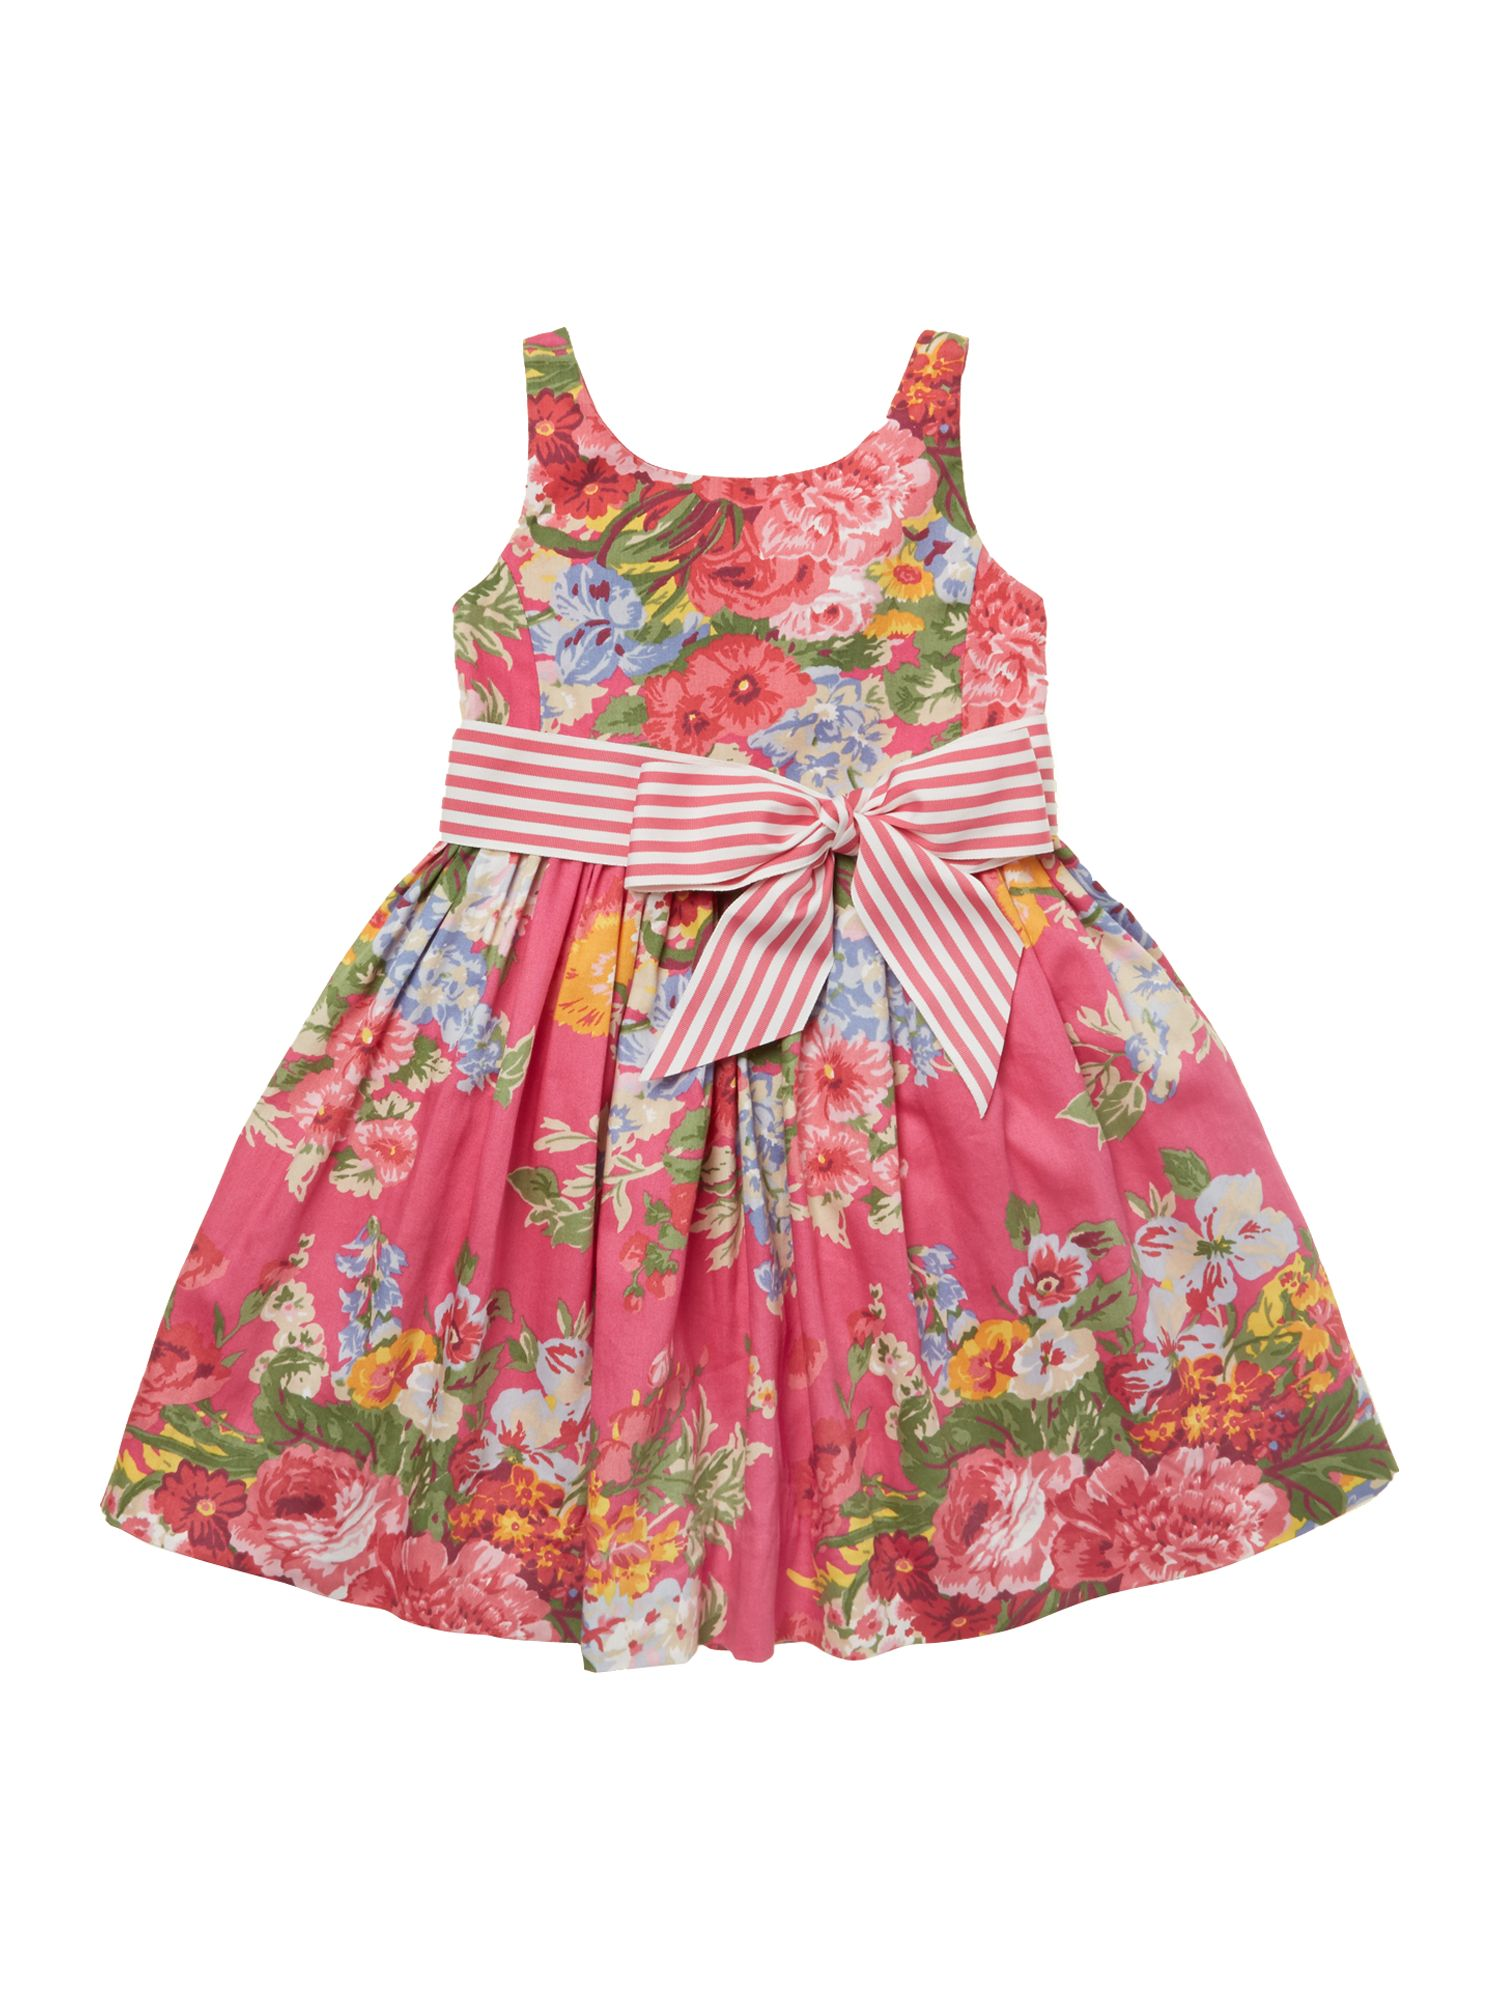 Girls bold floral dress